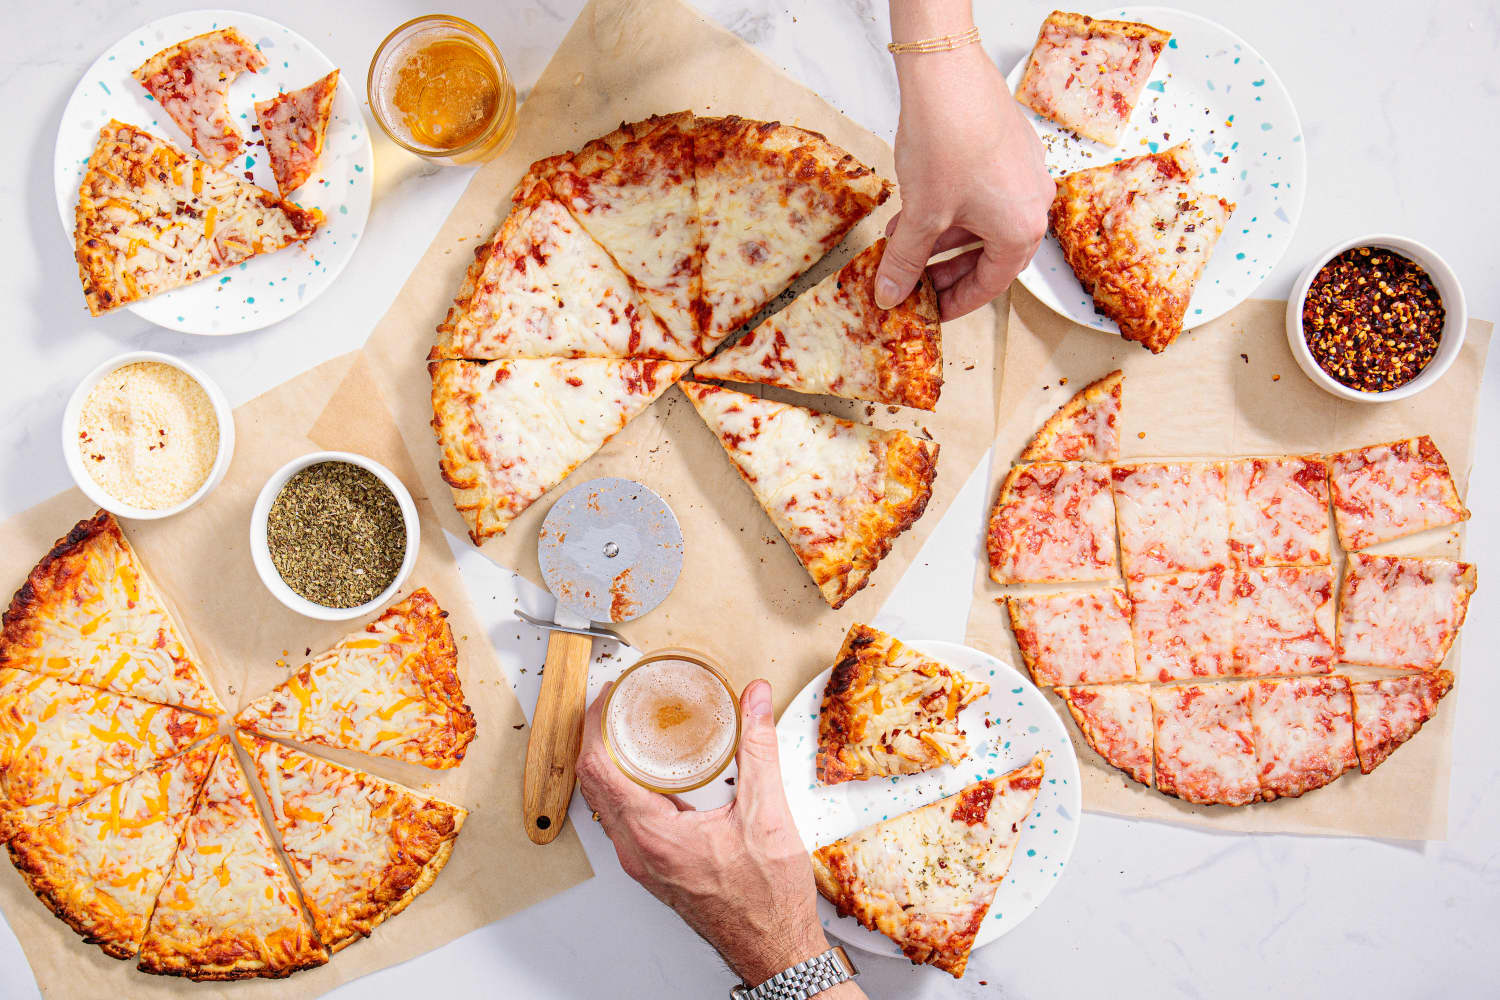 I Tried Frozen Pizzas from More than 21 Different Brands — These Were the Winners in 6 Categories